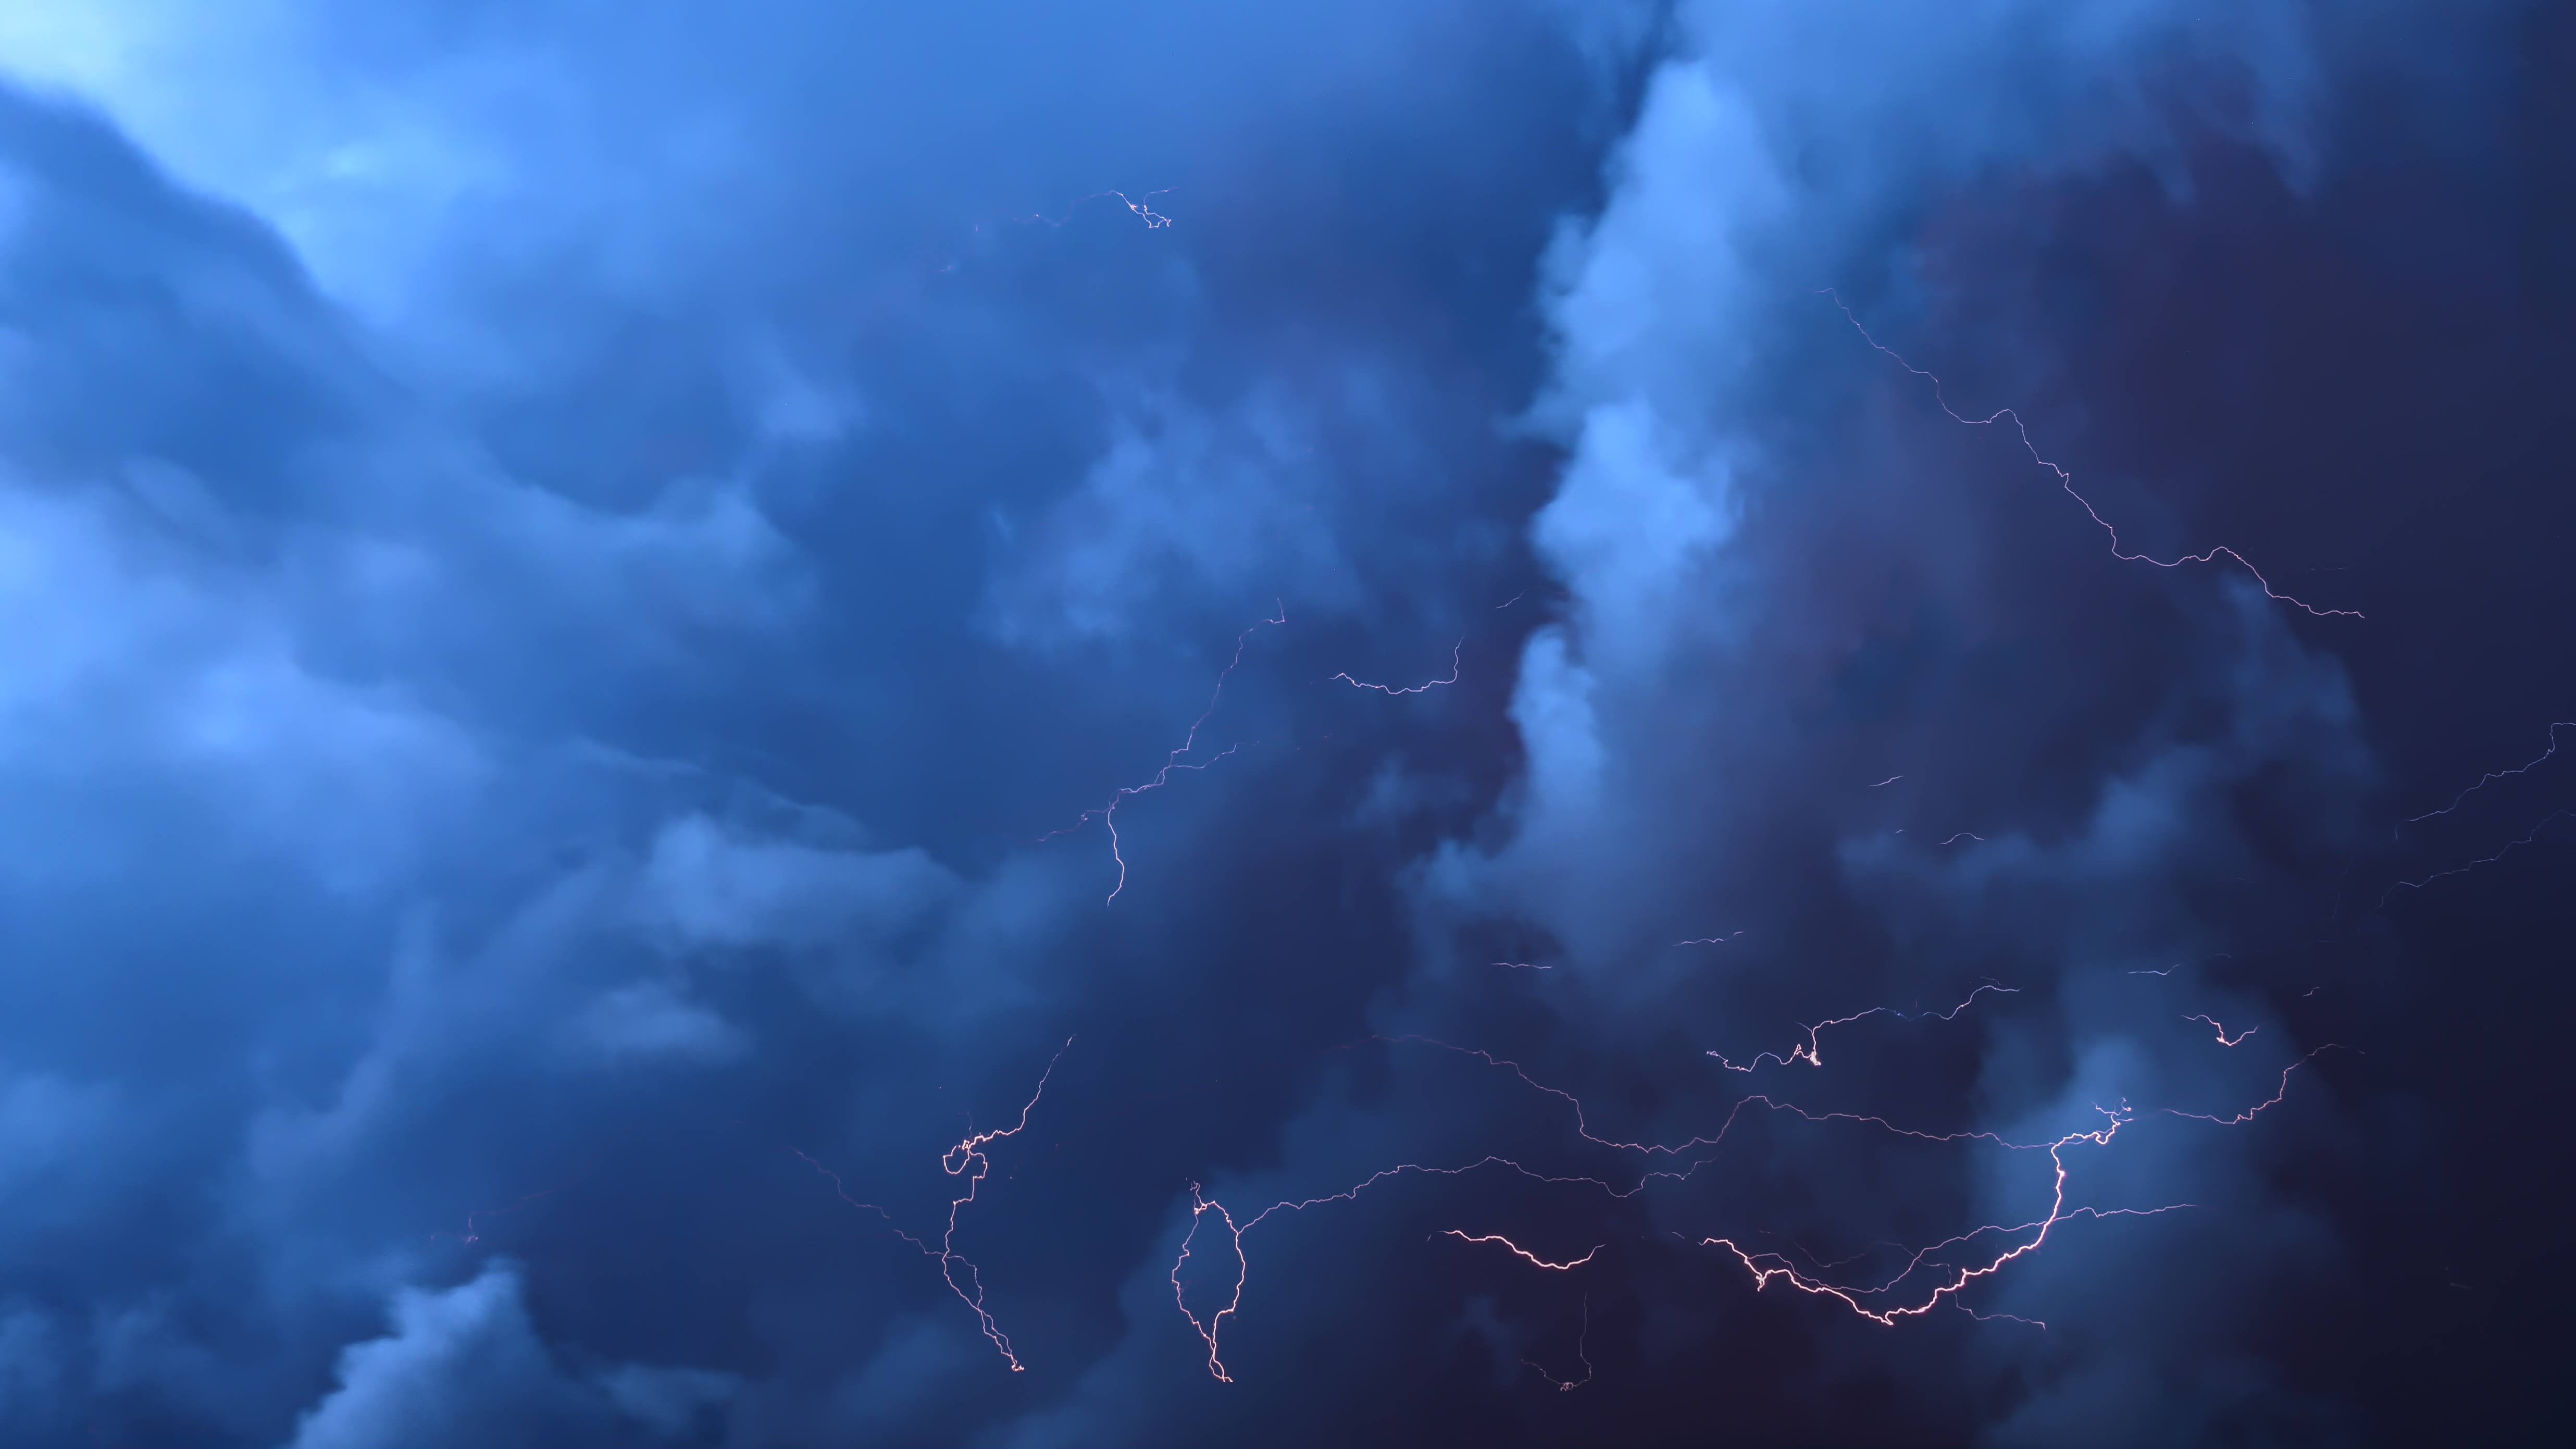 2560x1080 thunderstorm 5k 2560x1080 resolution hd 4k wallpapers images backgrounds photos and - Lightning wallpaper 4k ...